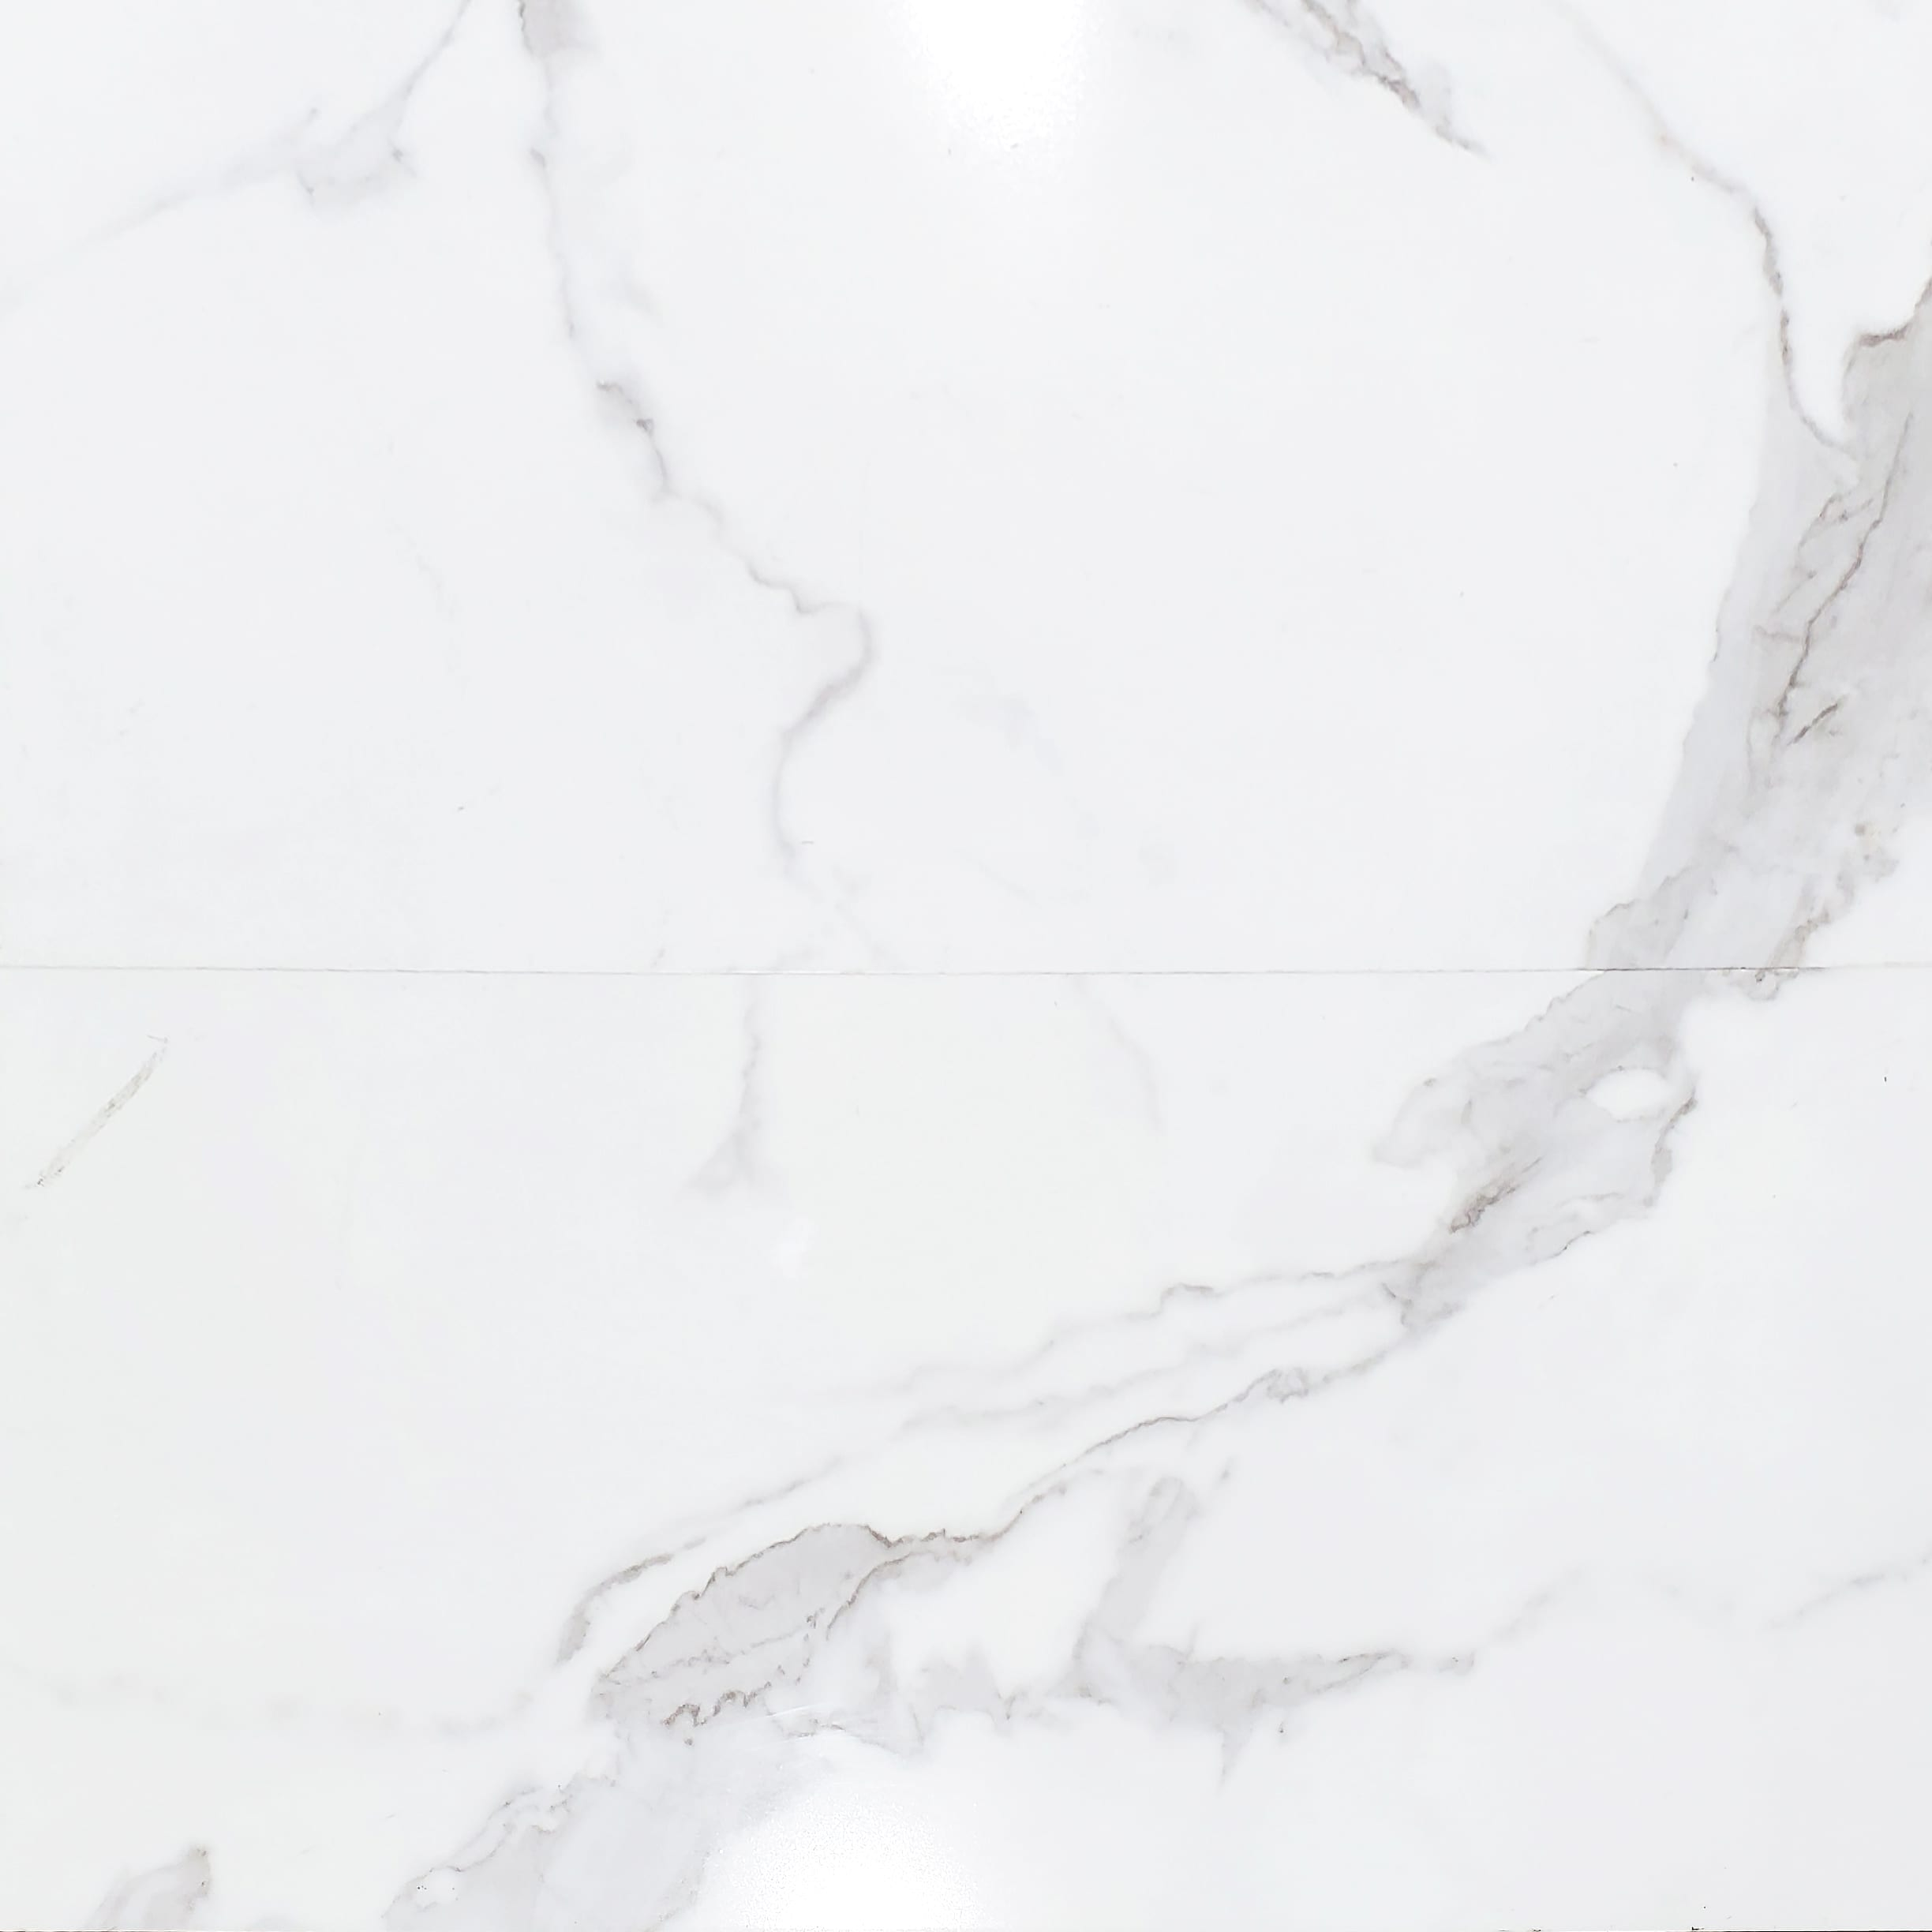 6mm High Gloss Vinyl Tile wHD Pad_HG-Carrara_20sfct_2.69